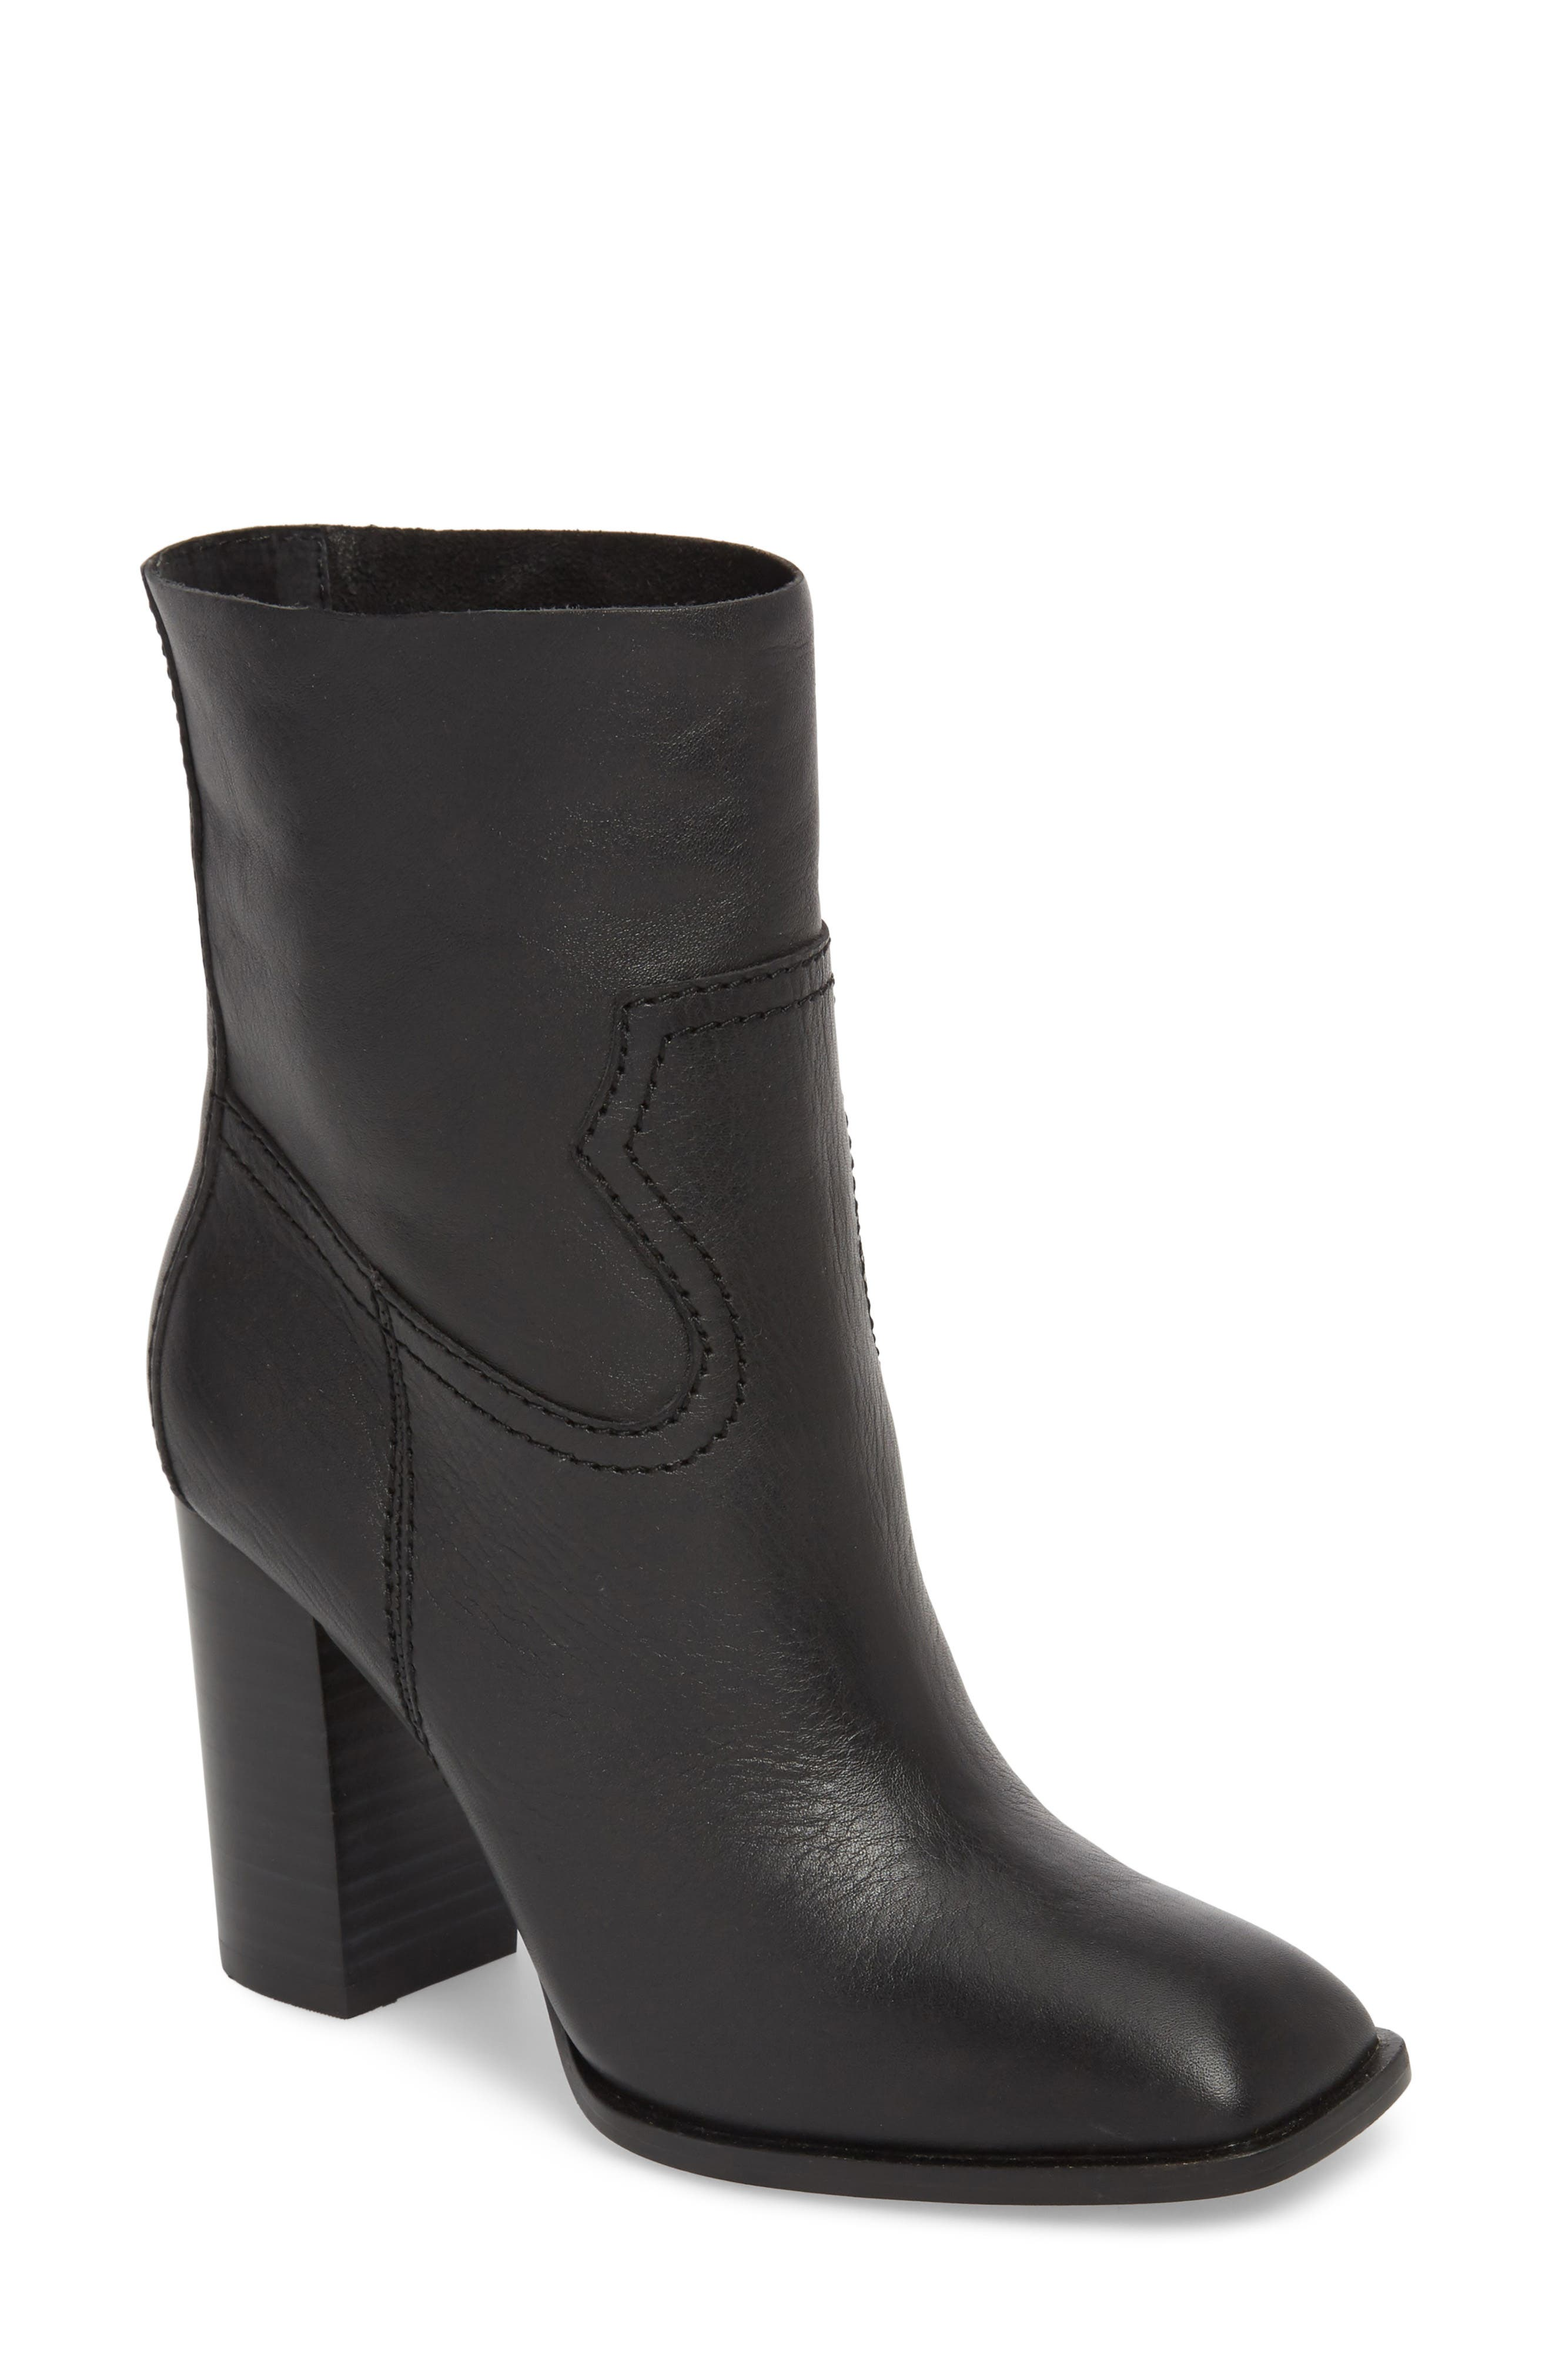 Nero Bootie,                             Main thumbnail 1, color,                             BLACK LEATHER